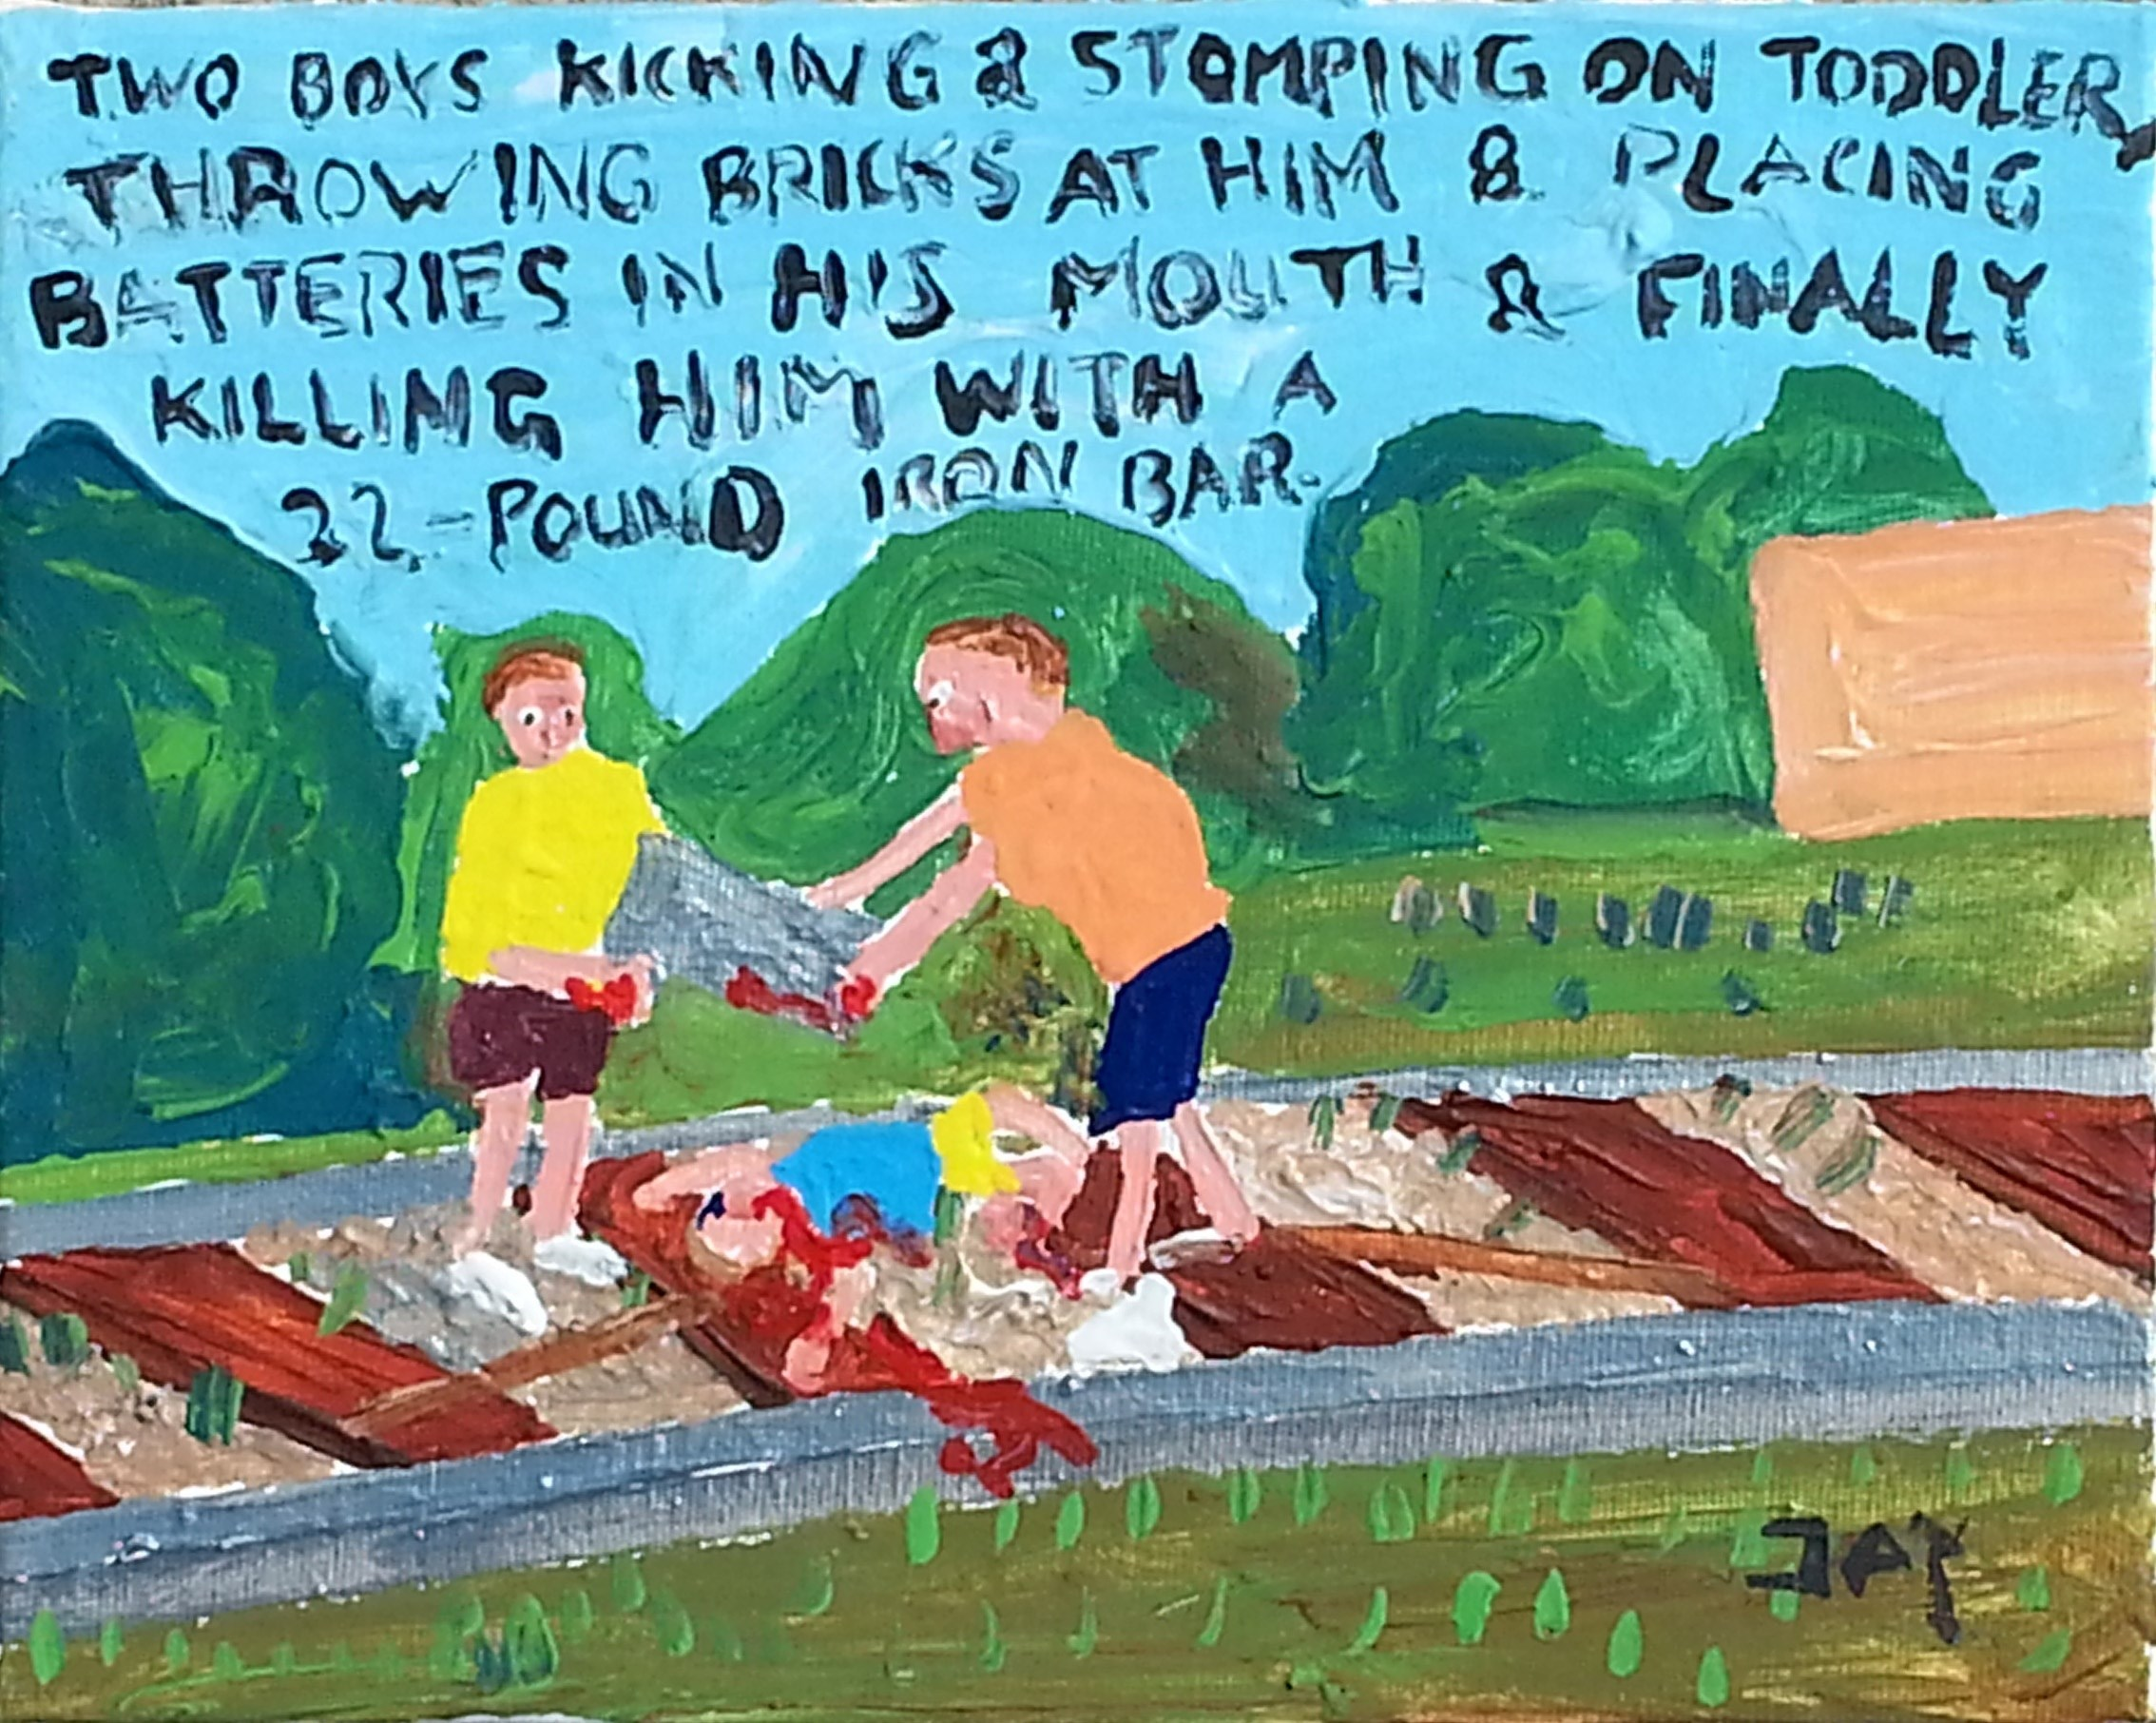 Bad Painting number 14: Two boys kicking and stomping on toddler, throwing bricks at him & placing batteries in his mouth & finally killing him with a 22 pound iron bar, Pintura Acrílico Corpo original por Jay Rechsteiner